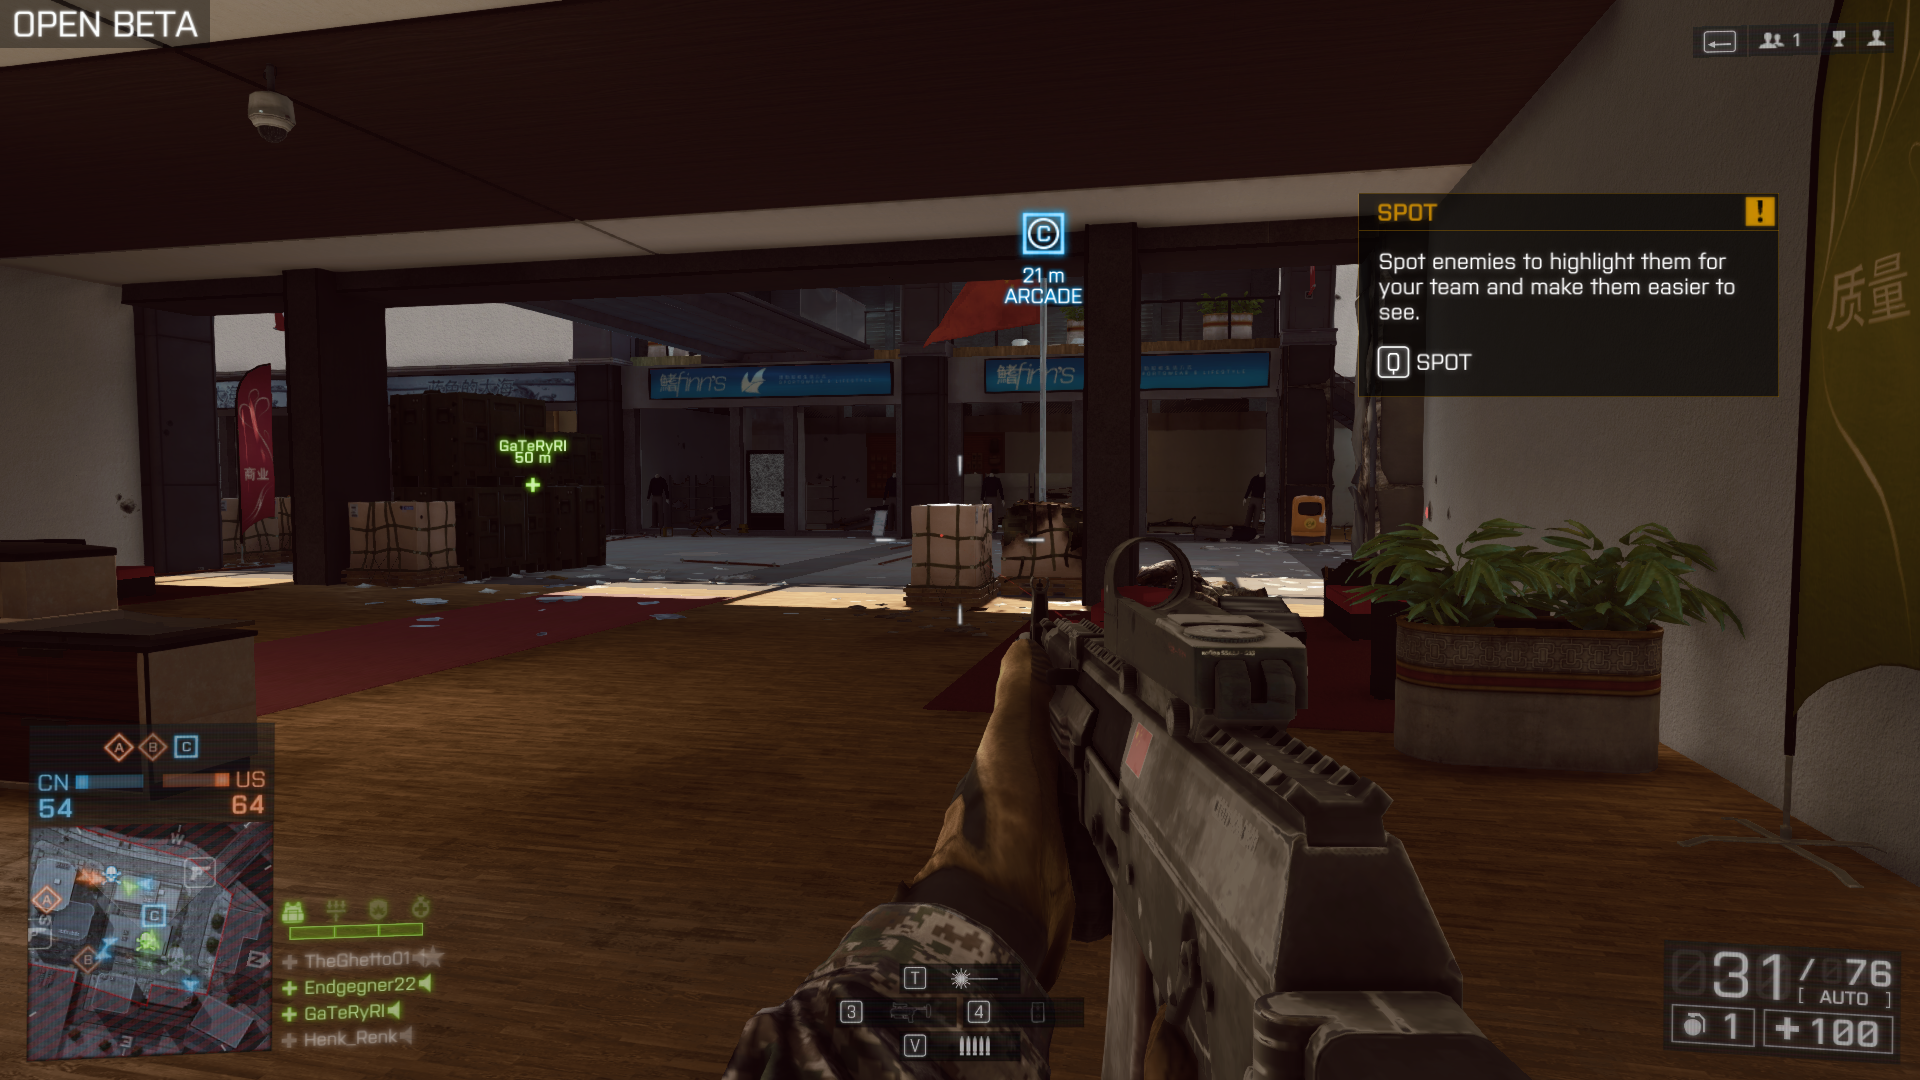 http://endgegner.fightercom.de/BF4_Screenshot/Battlefield4OpenBeta02.png